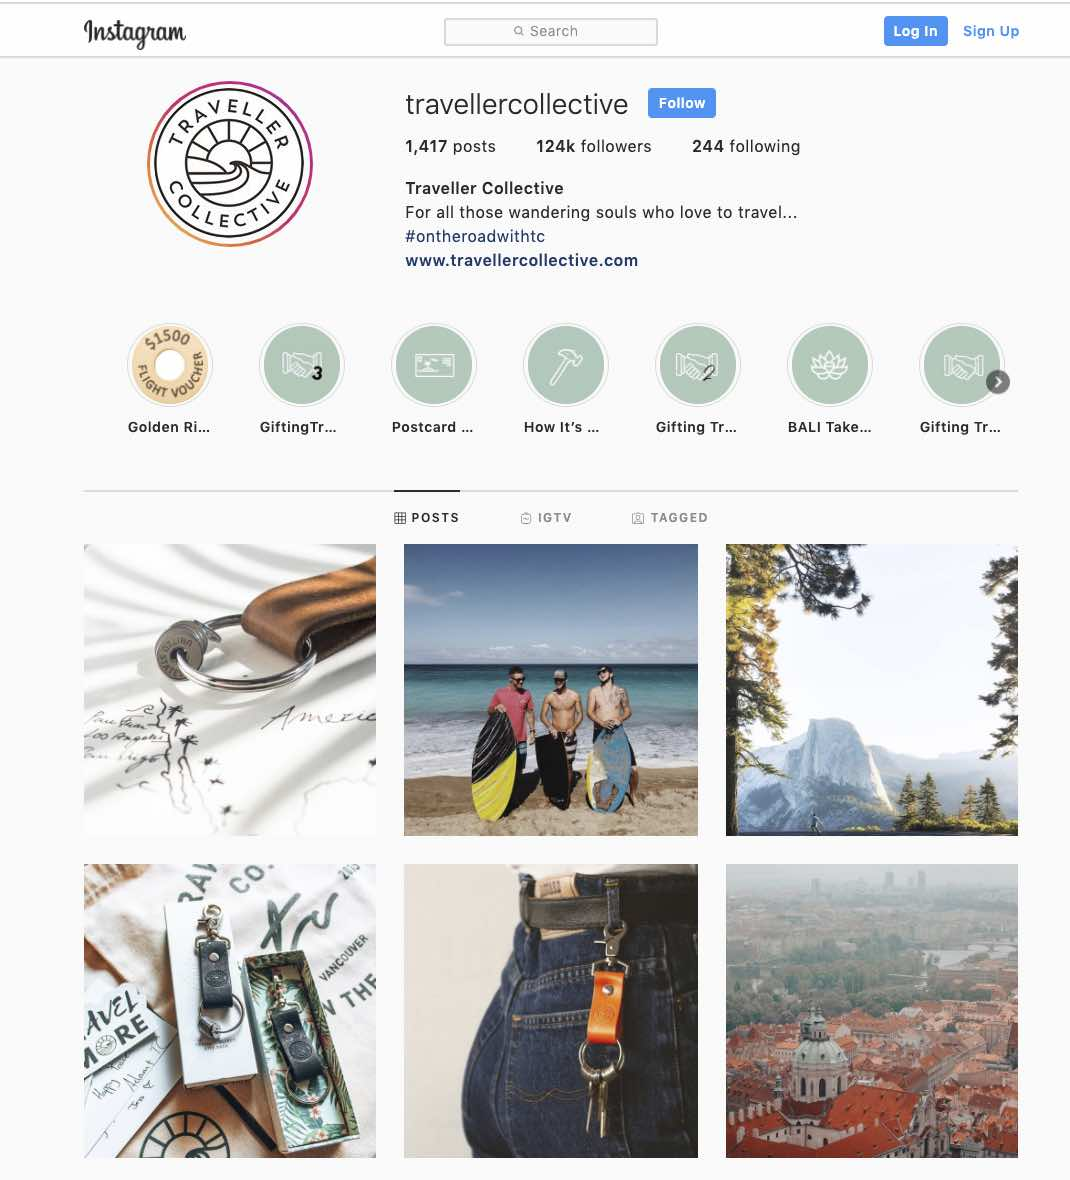 Instagram page for Traveller Collective, one of our success stories that uses social media to great effect.